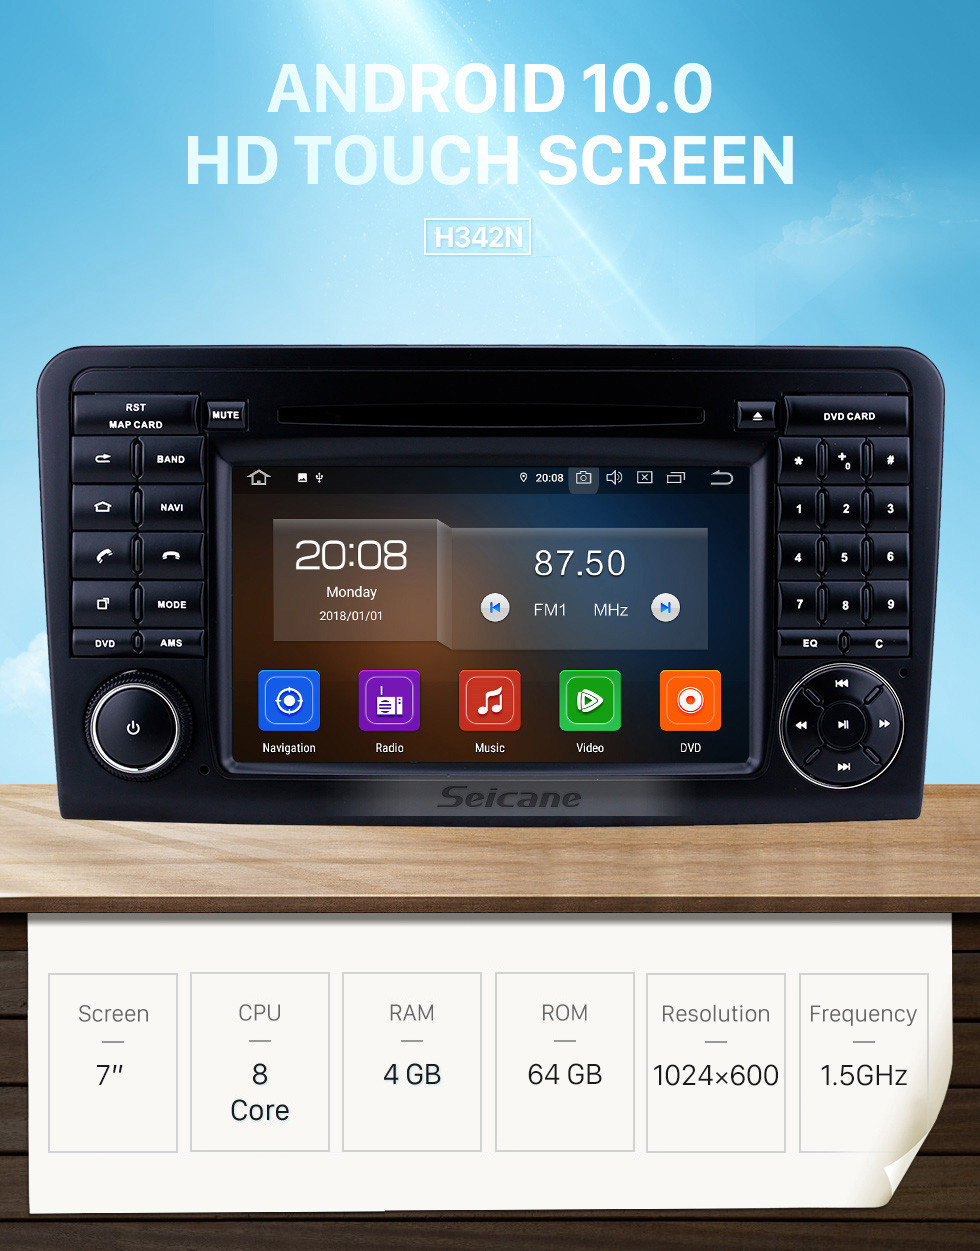 Seicane 7 inch Android 10.0 GPS Navigation Radio for 2005-2012 Mercedes Benz ML CLASS W164 ML350 ML430 ML450 ML500/GL CLASS X164 GL320 with HD Touchscreen Carplay Bluetooth support DVR